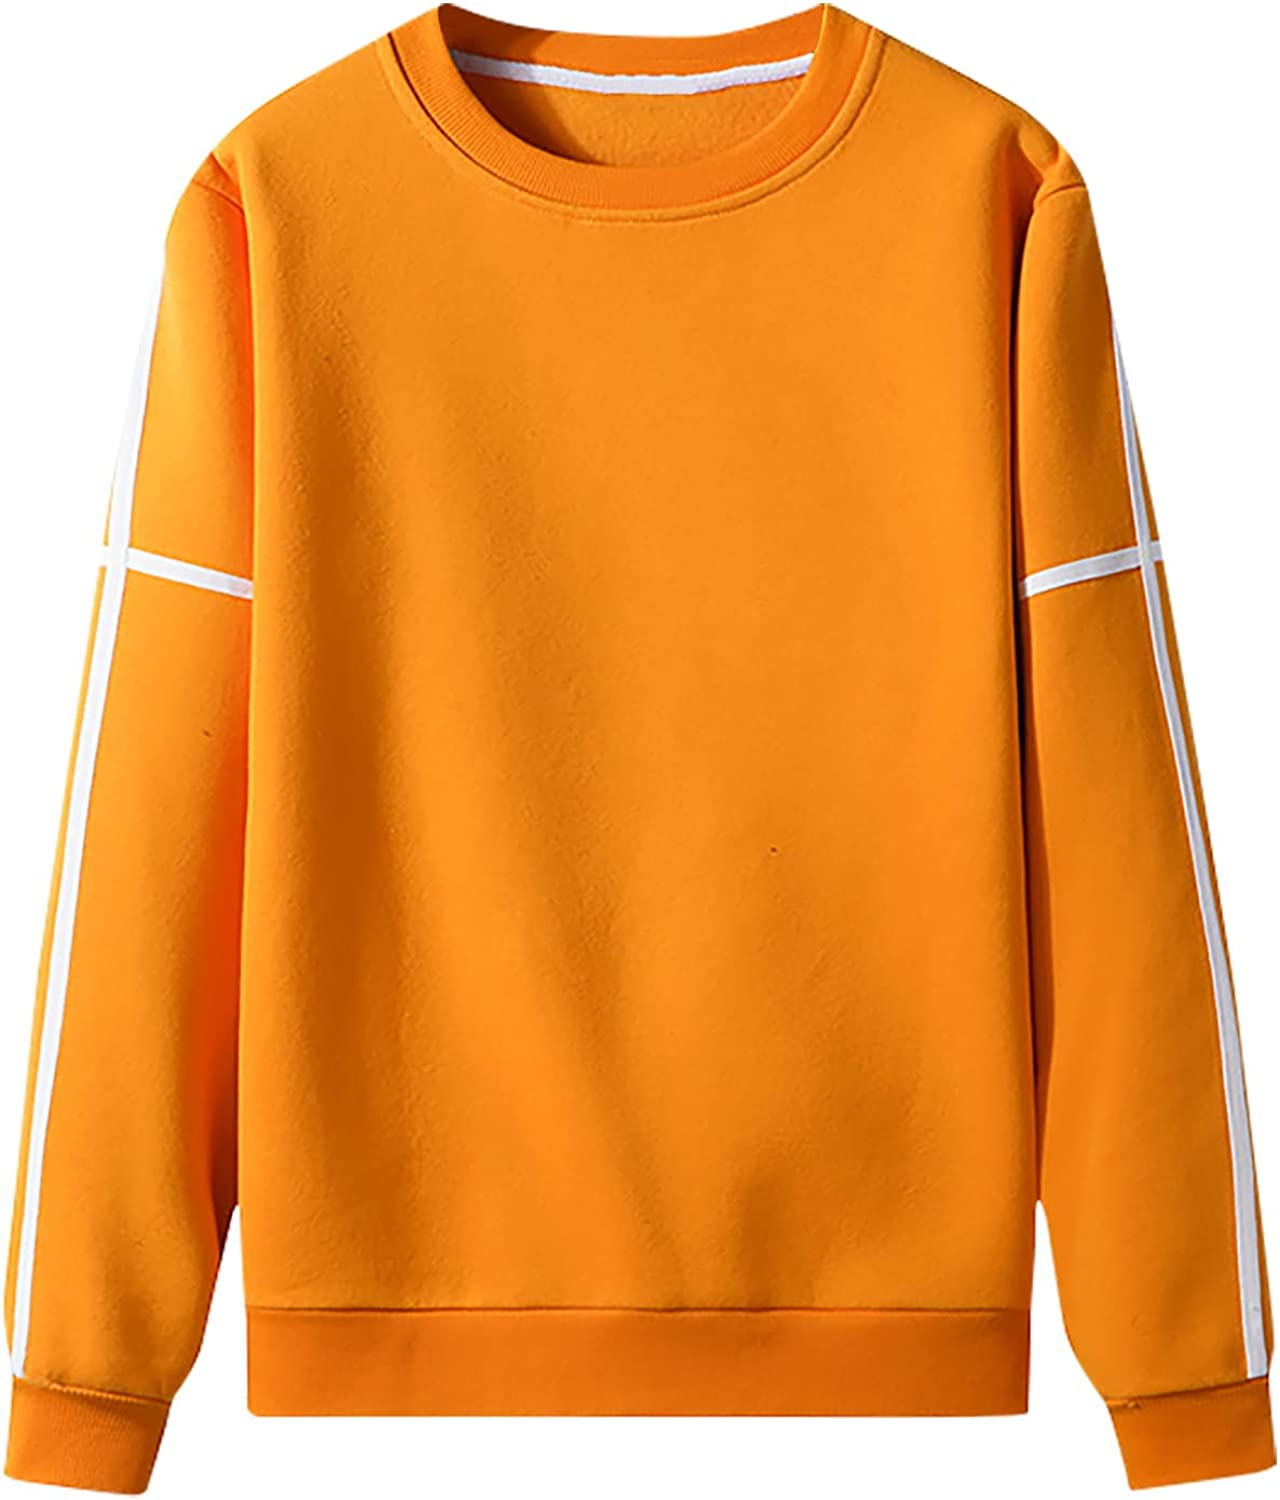 Men Casual Solid Basic Pullover Houston Mall Baltimore Mall Round Sweater Top With Webb Neck